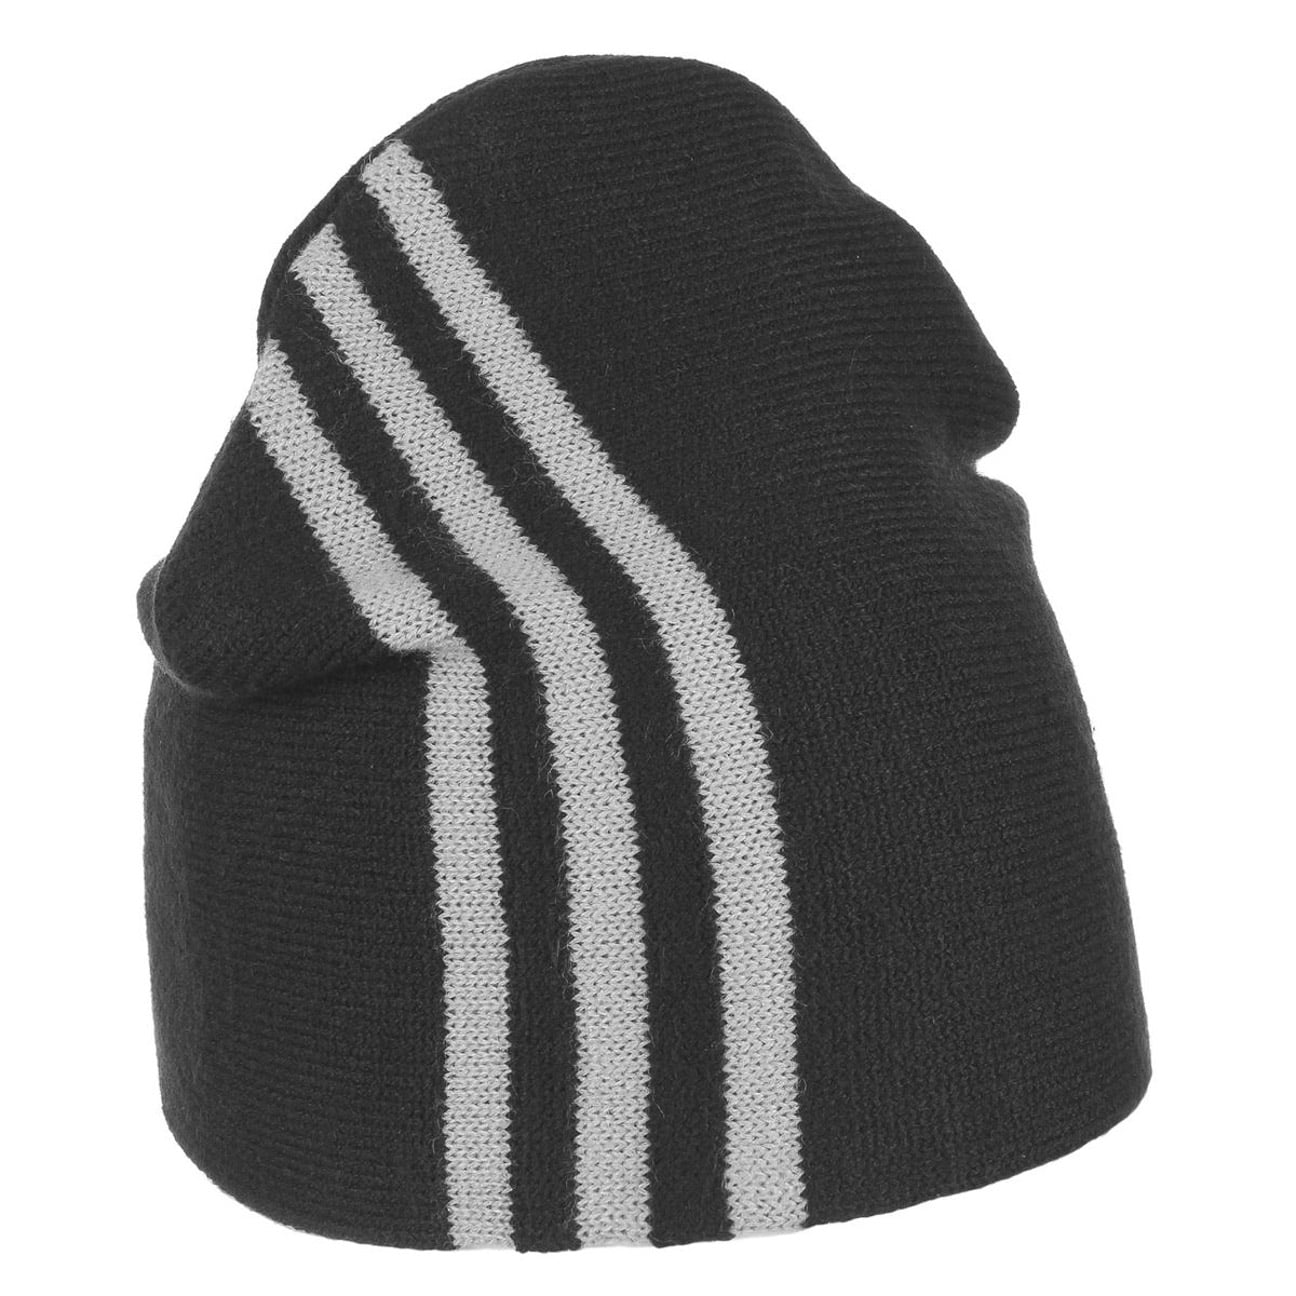 81997f4d ... ESS 3 Stripes Beanie 3 by adidas - black 1